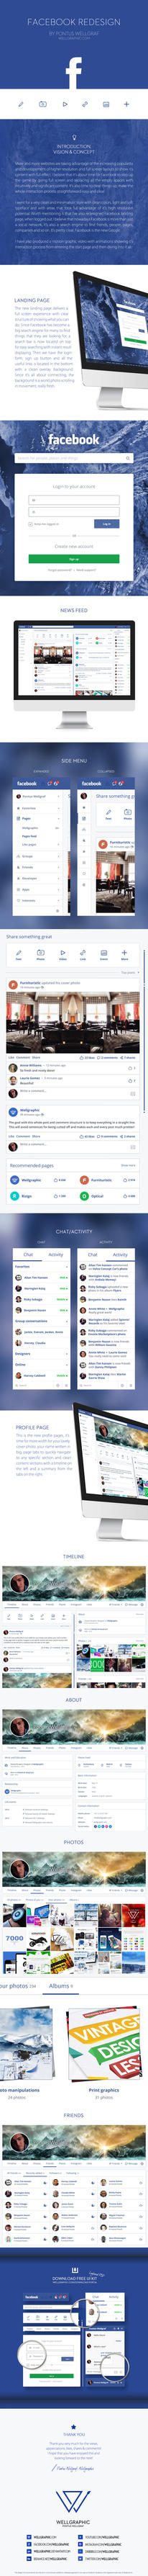 Facebook Redesign by wellgraphic